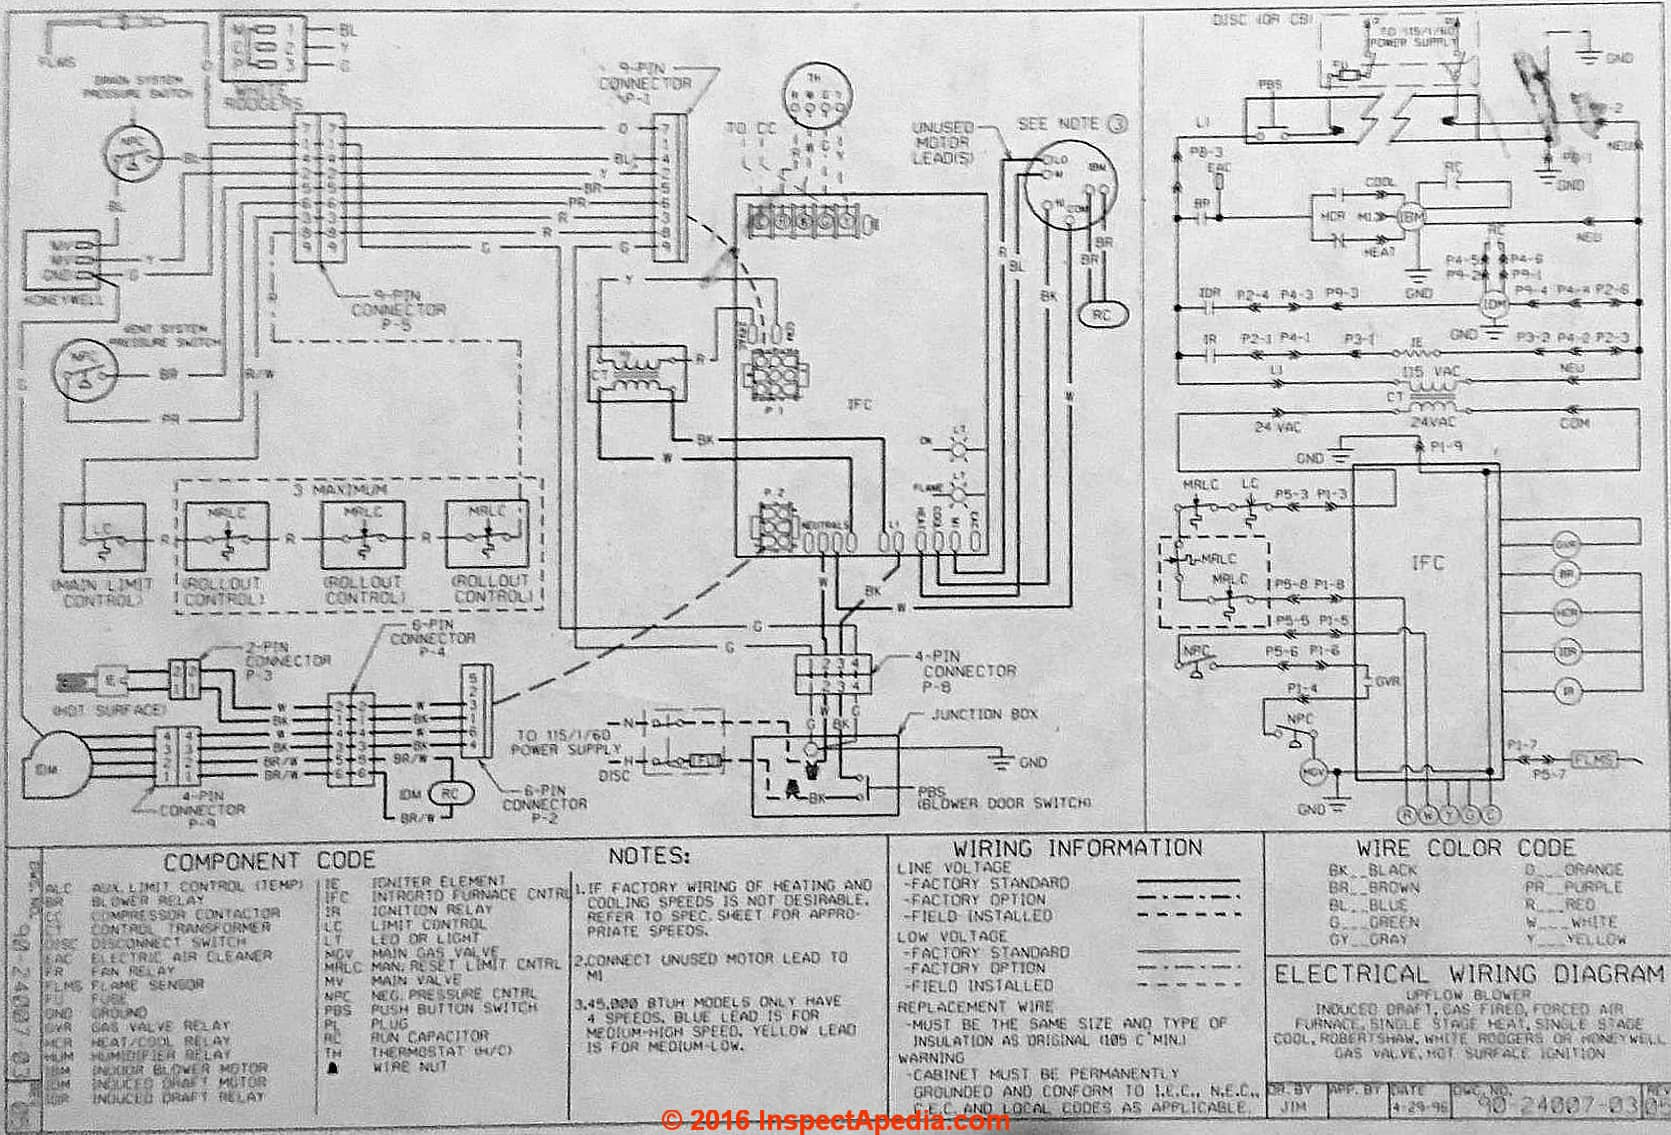 Climatemaster evaporator wiring diagram wiring diagrams schematics air conditioner heat pump faqs rheem ahu wiring diagram typical at inspectapedia com climatemaster evaporator wiring diagram swarovskicordoba Image collections